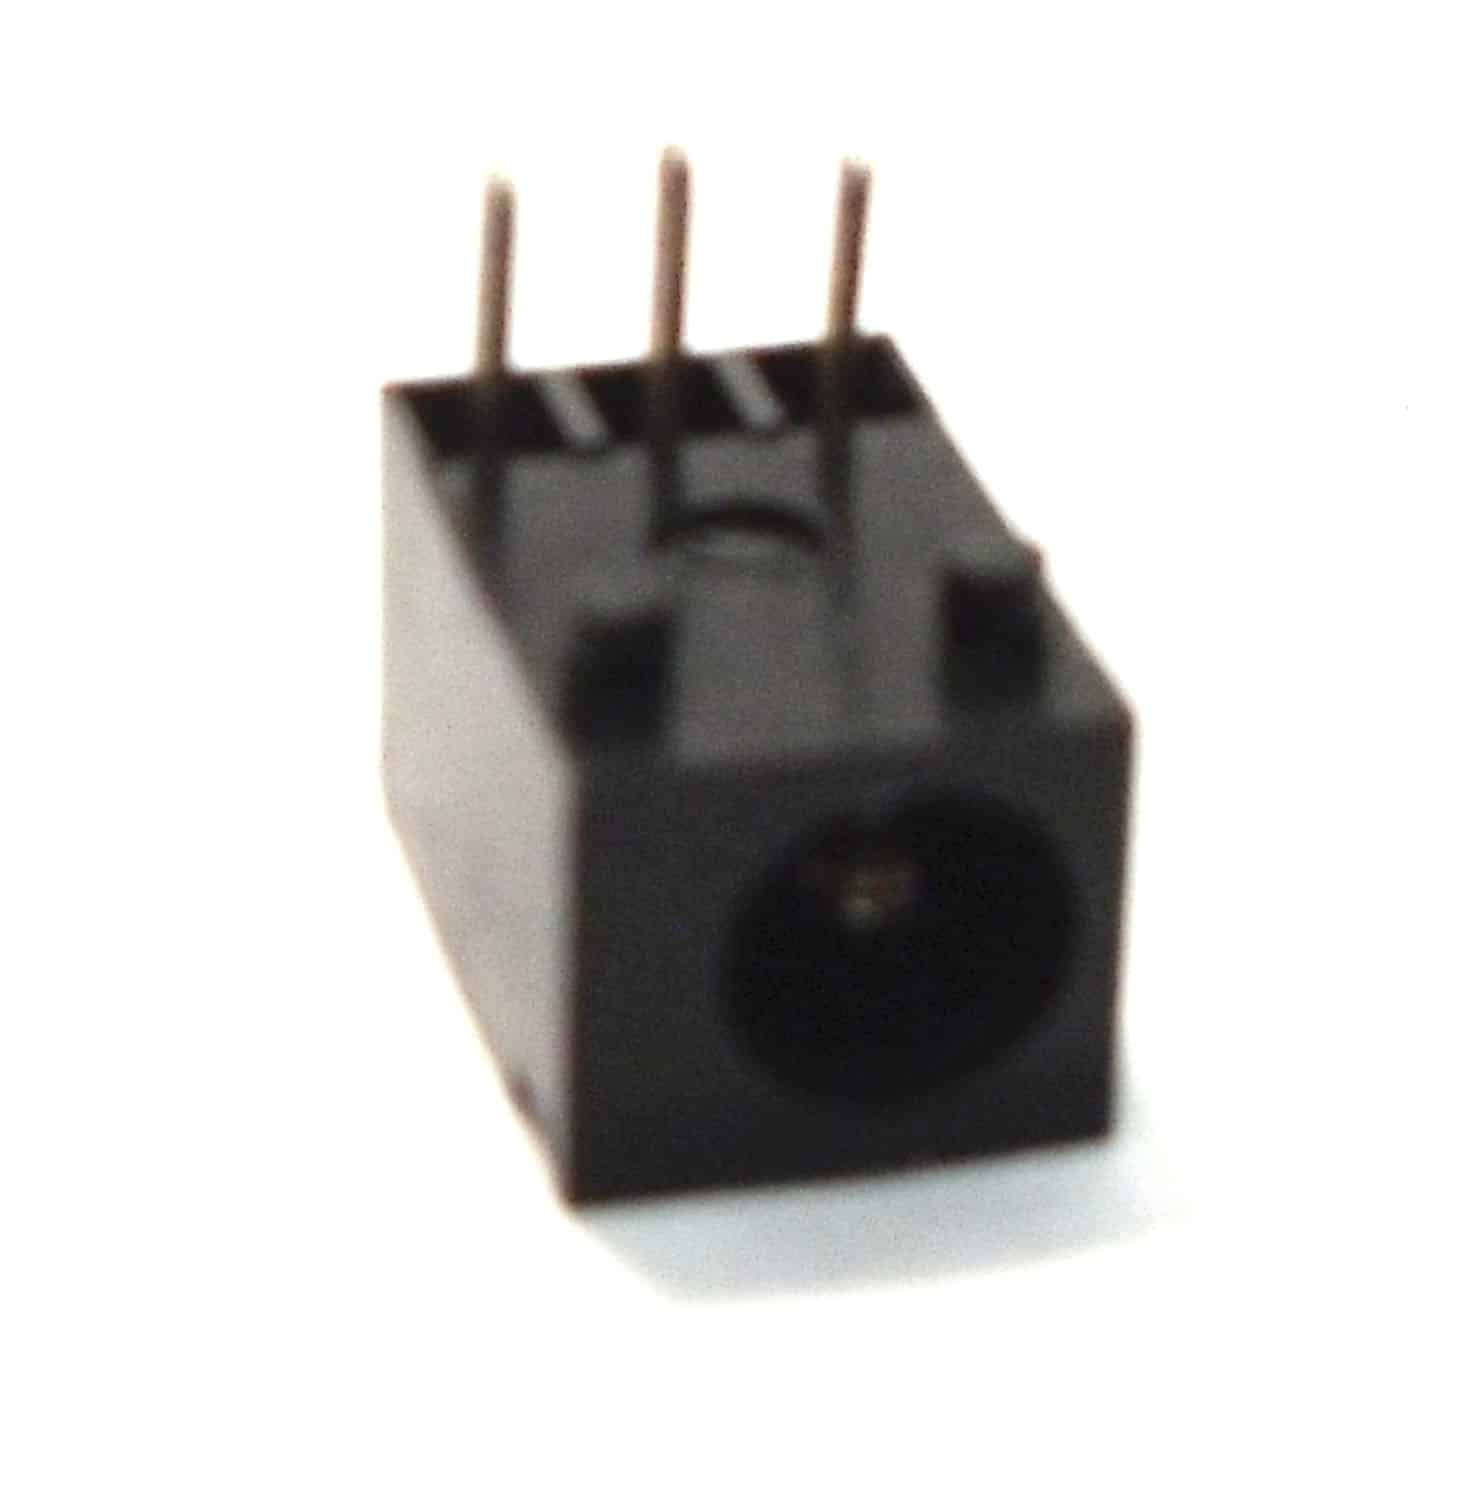 BJKY0285001 - Uniden Replacement DC Power Jack